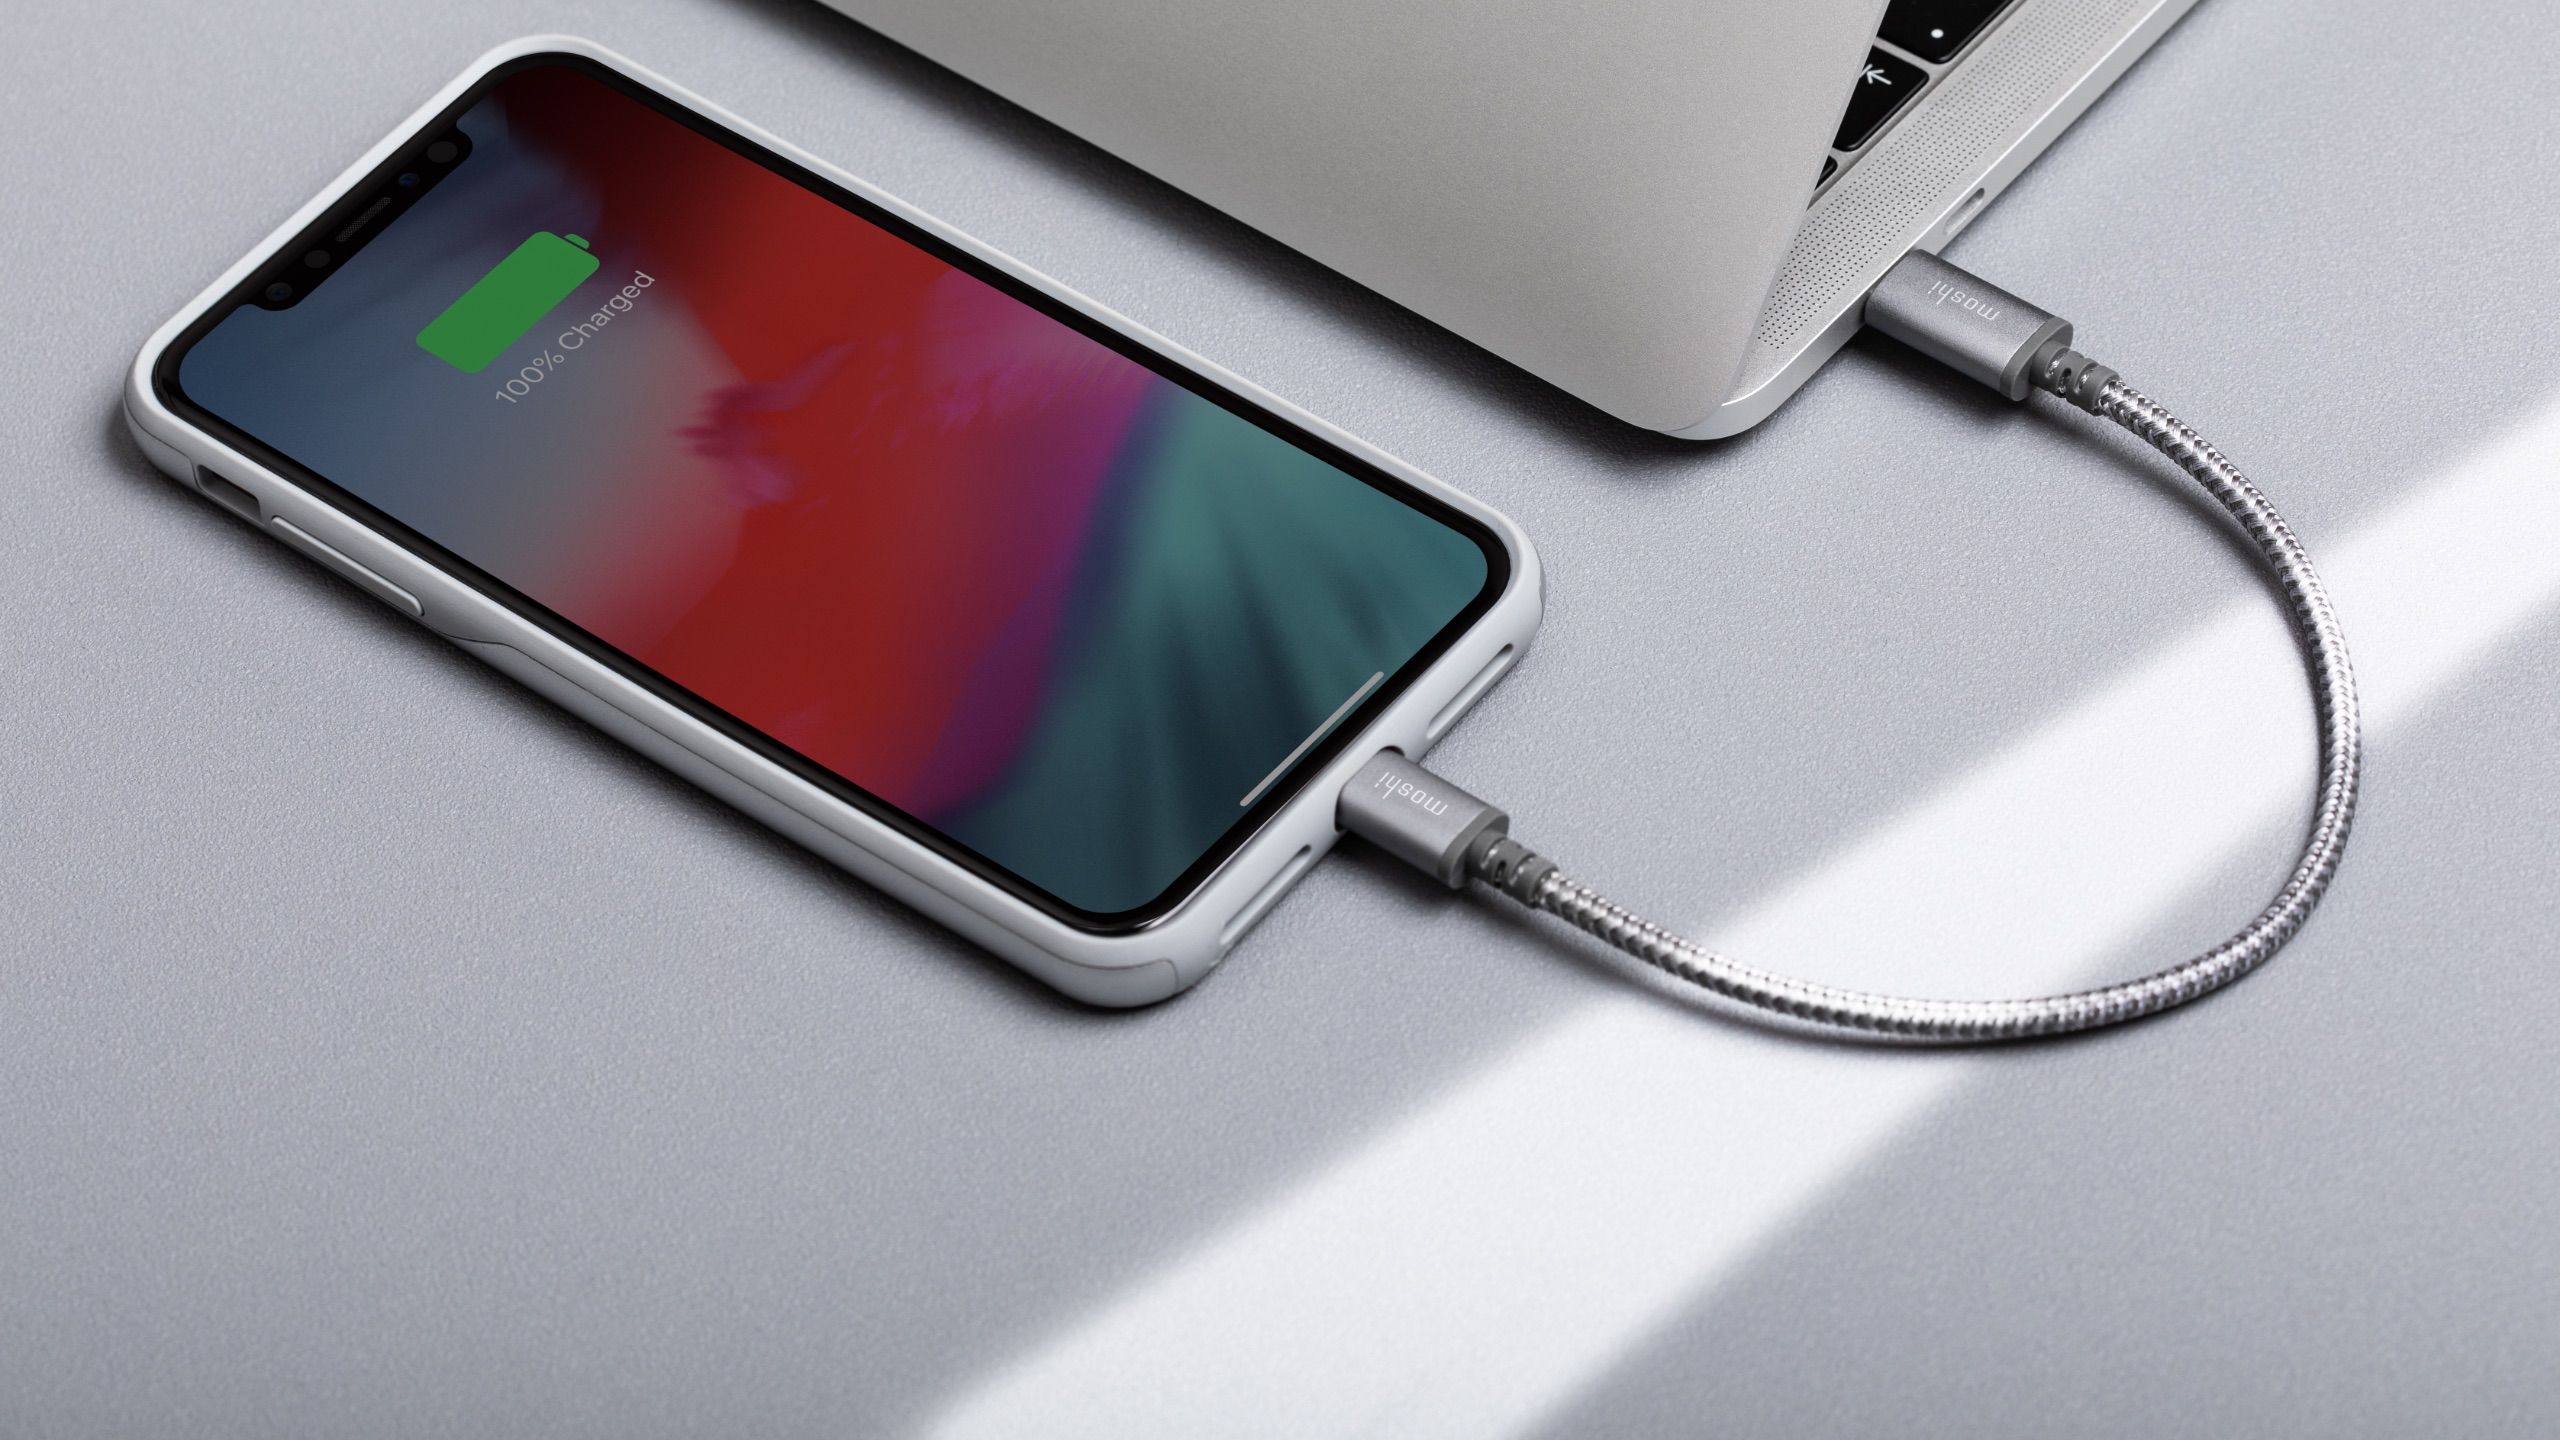 Integra™ USB-C to Lightning Cable 0.8 ft (0.25 m)-image